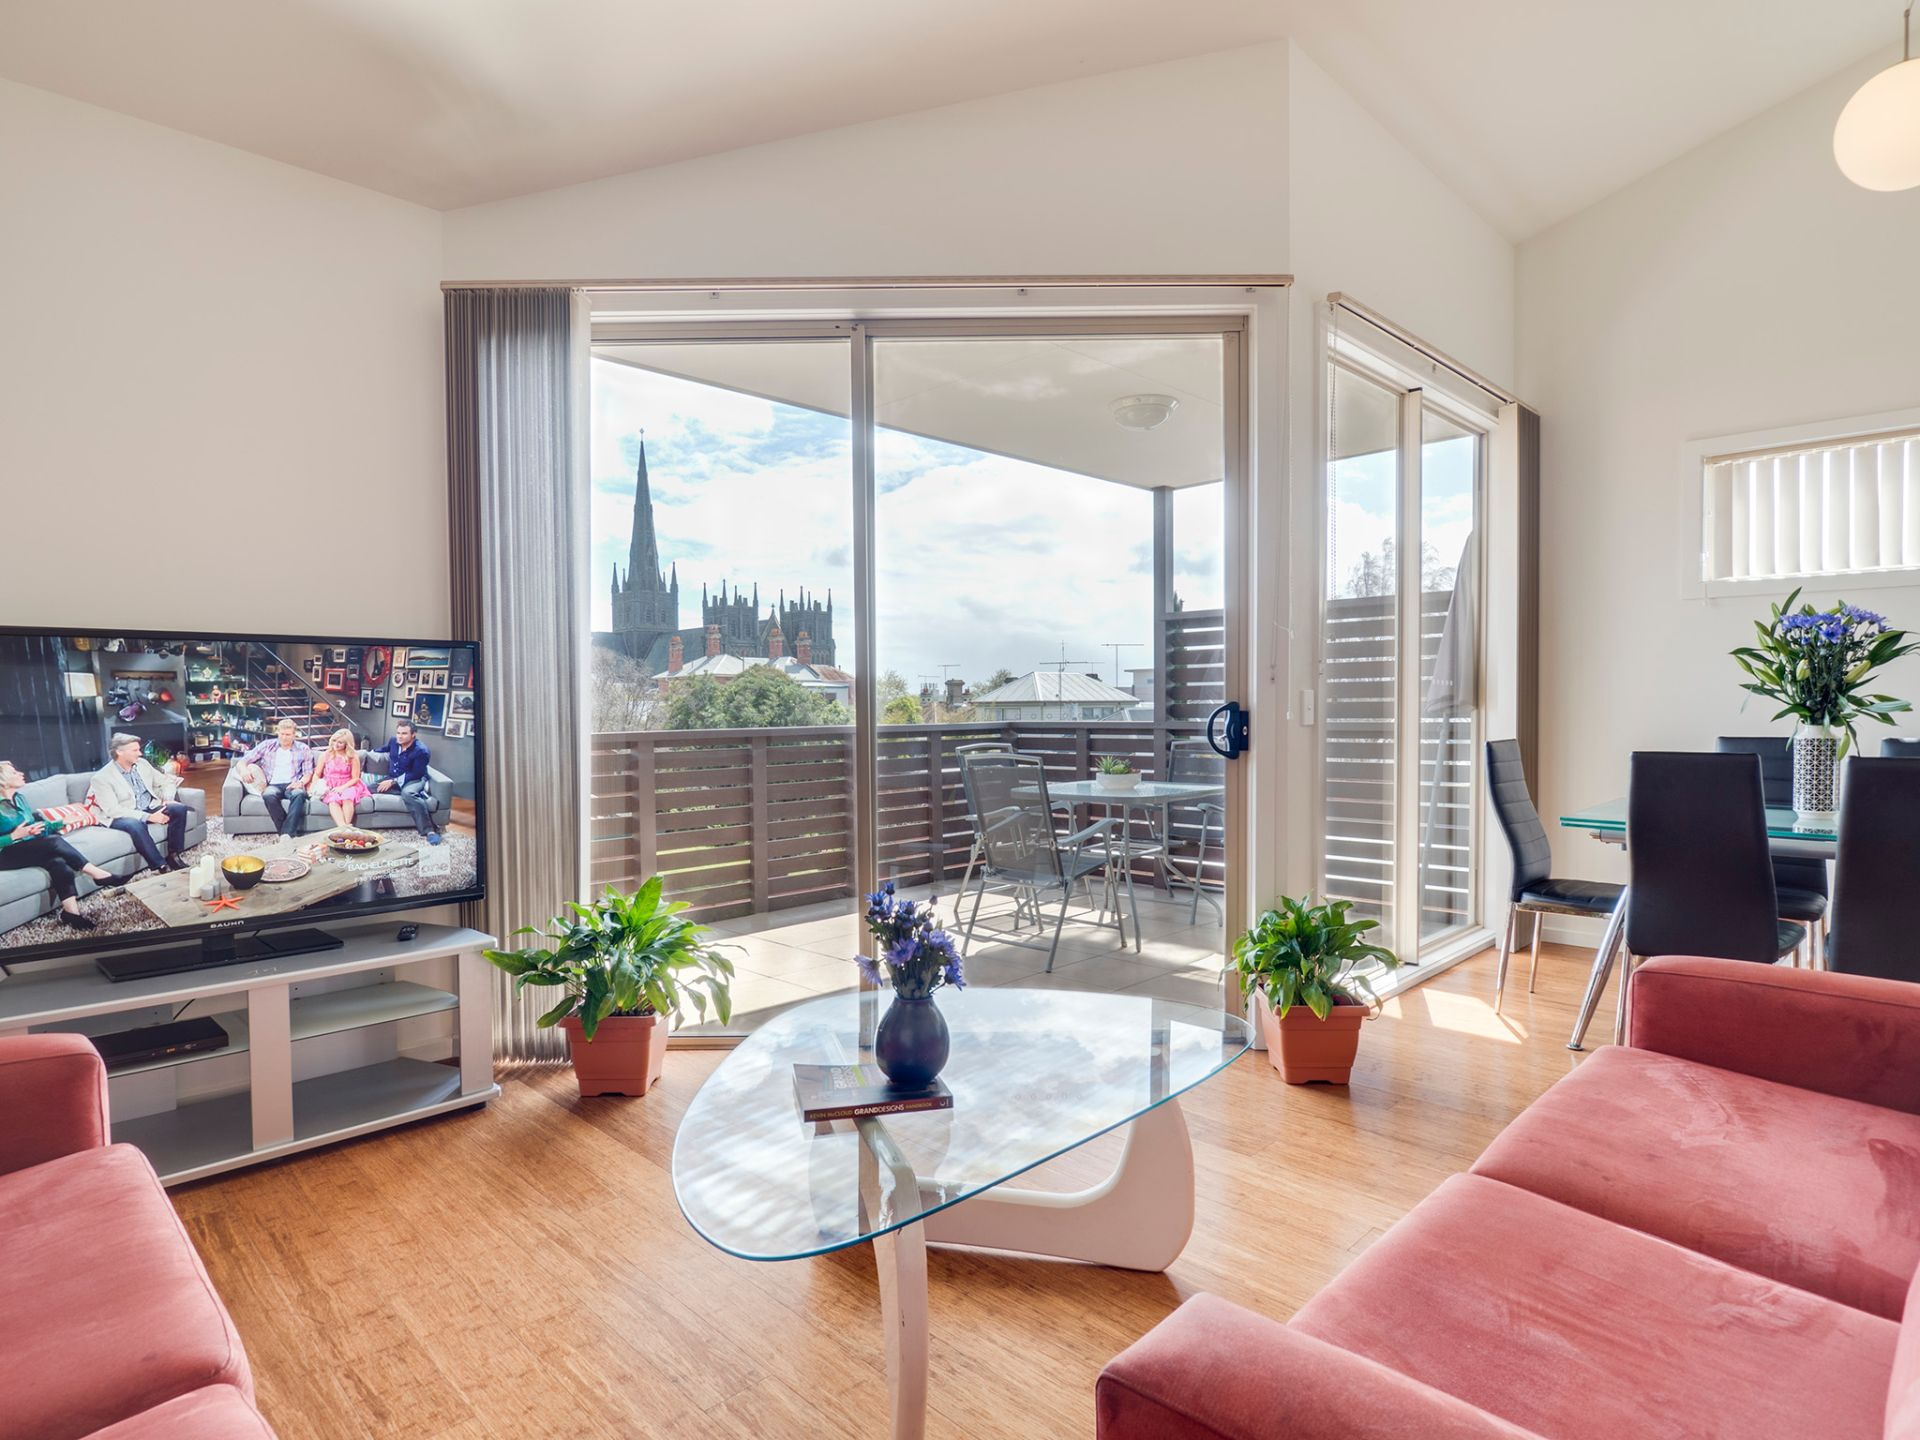 2 Bedroom Deluxe | Central Geelong Apartments